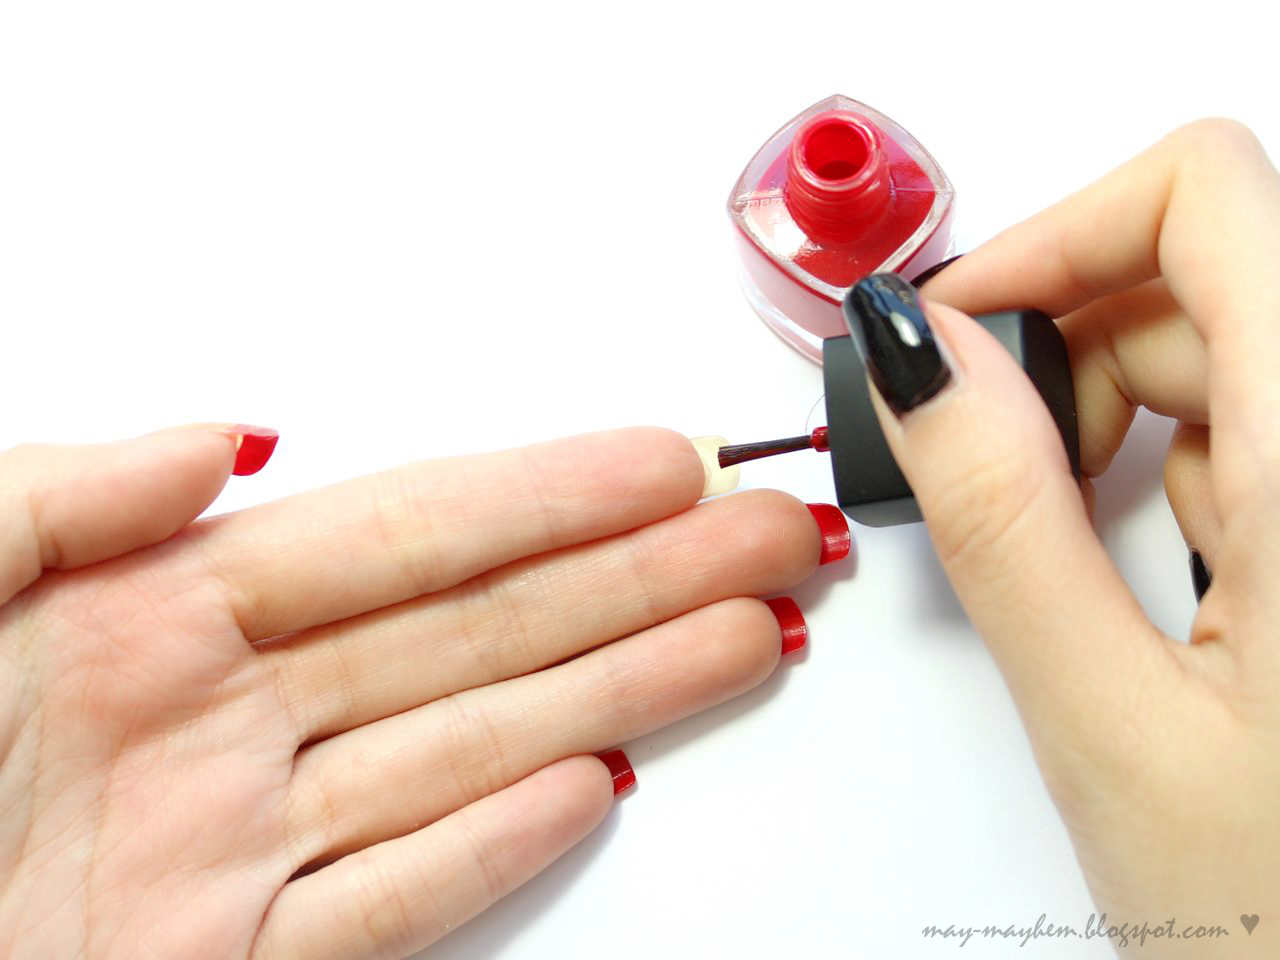 Mayhem: Christian Louboutin Inspired Nails